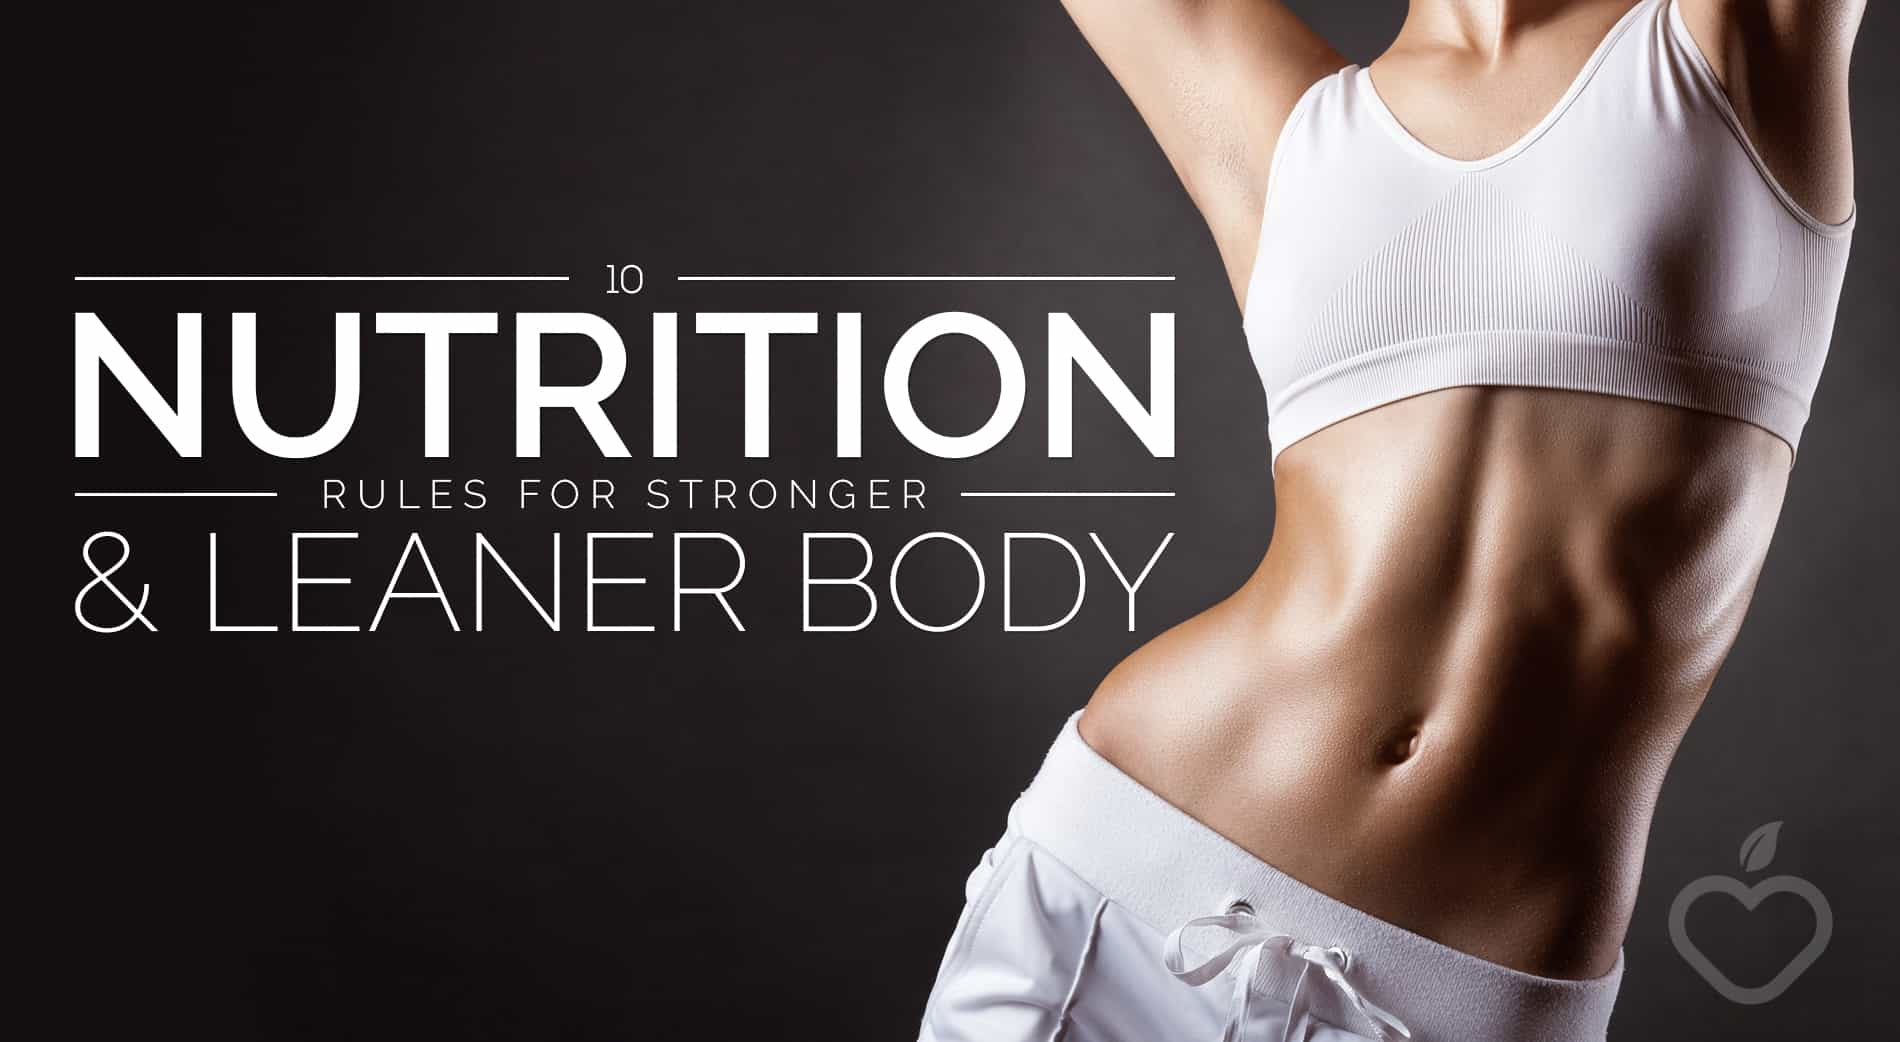 Nutrition Rules Image Design 1 - 10 Nutrition Rules for a Stronger and Leaner Body